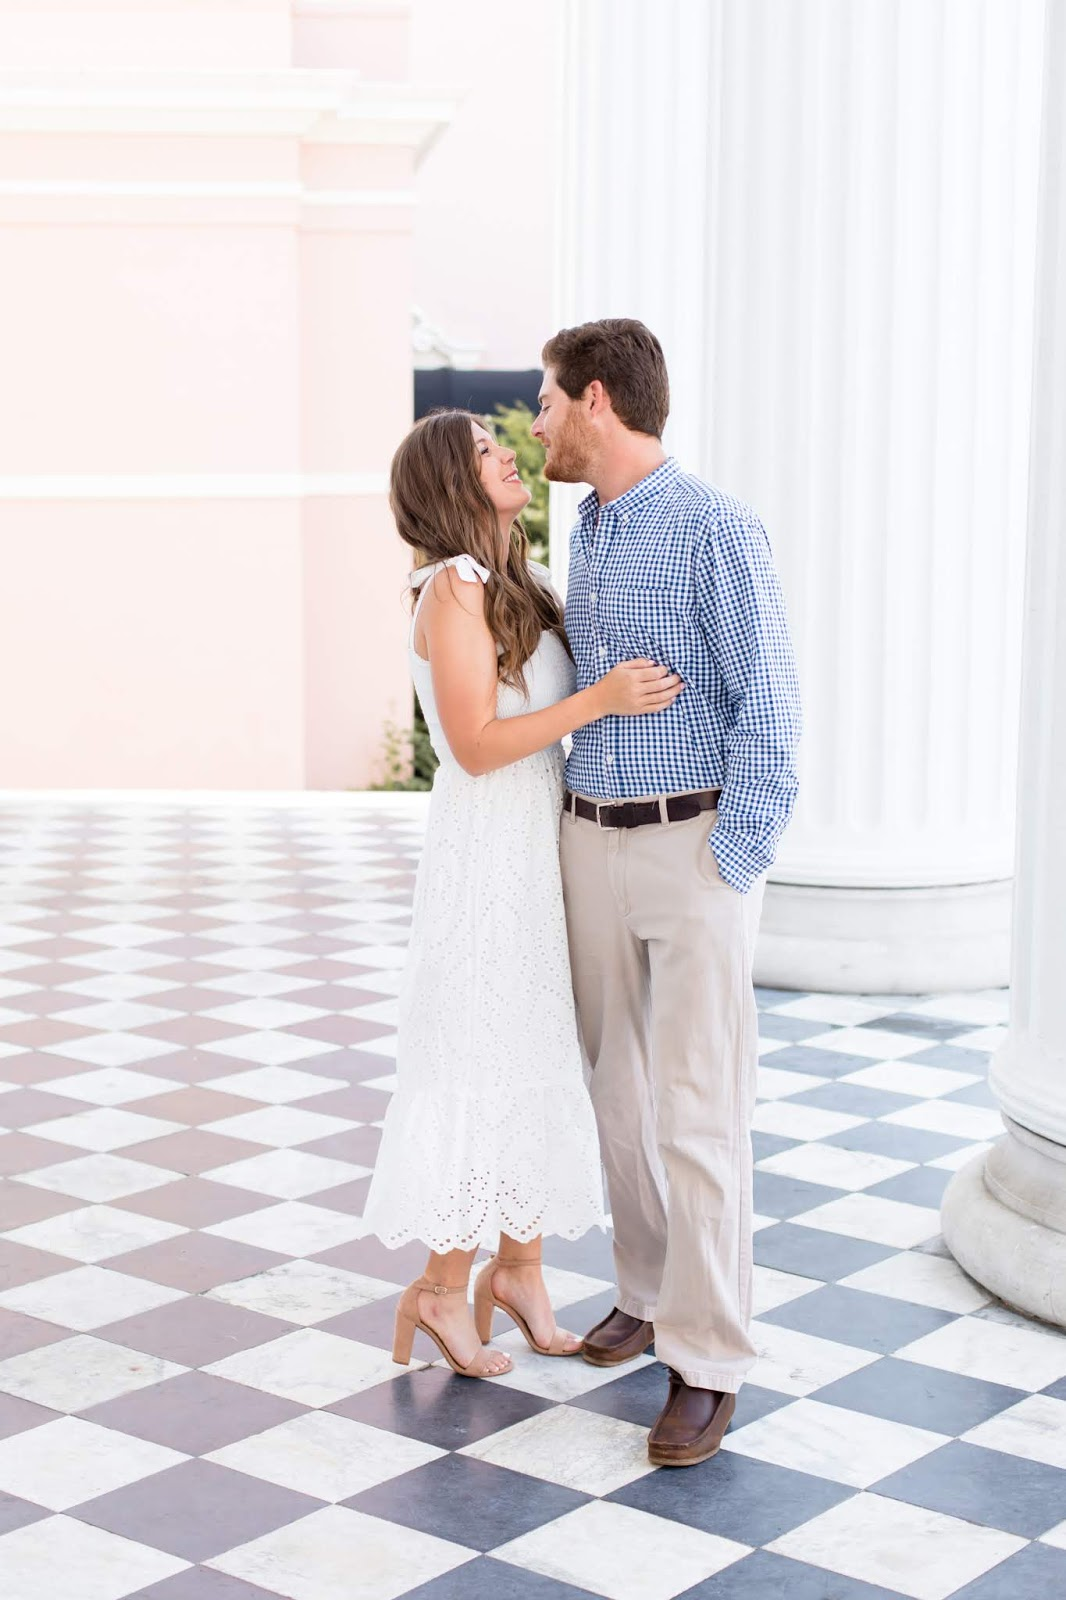 Our Charleston Engagement Photoshoot - Chasing Cinderella